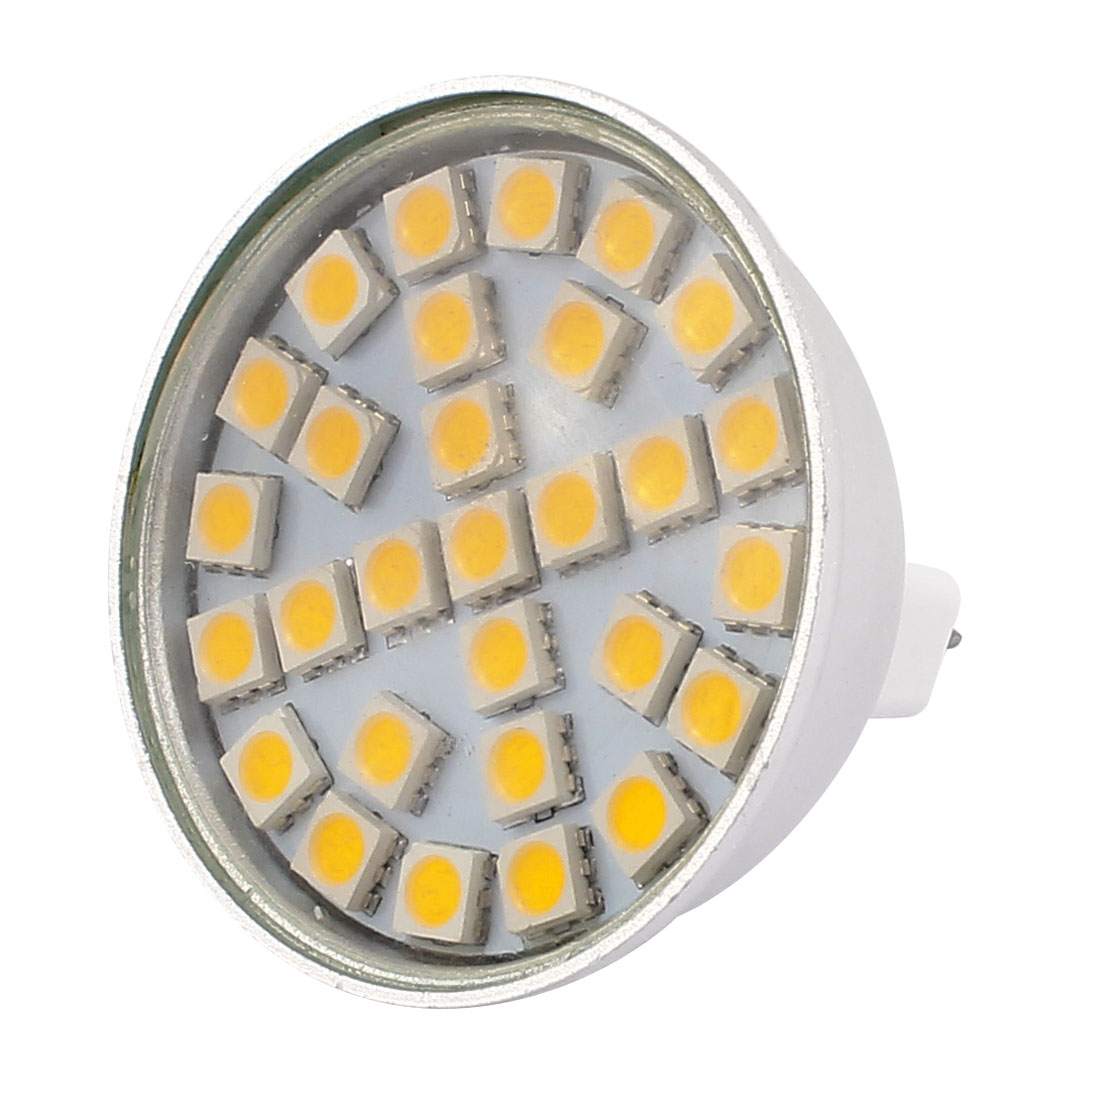 MR16 SMD5050 29LEDs Aluminum Energy Saving LED Lamp Bulb Warm White AC 220V 5W